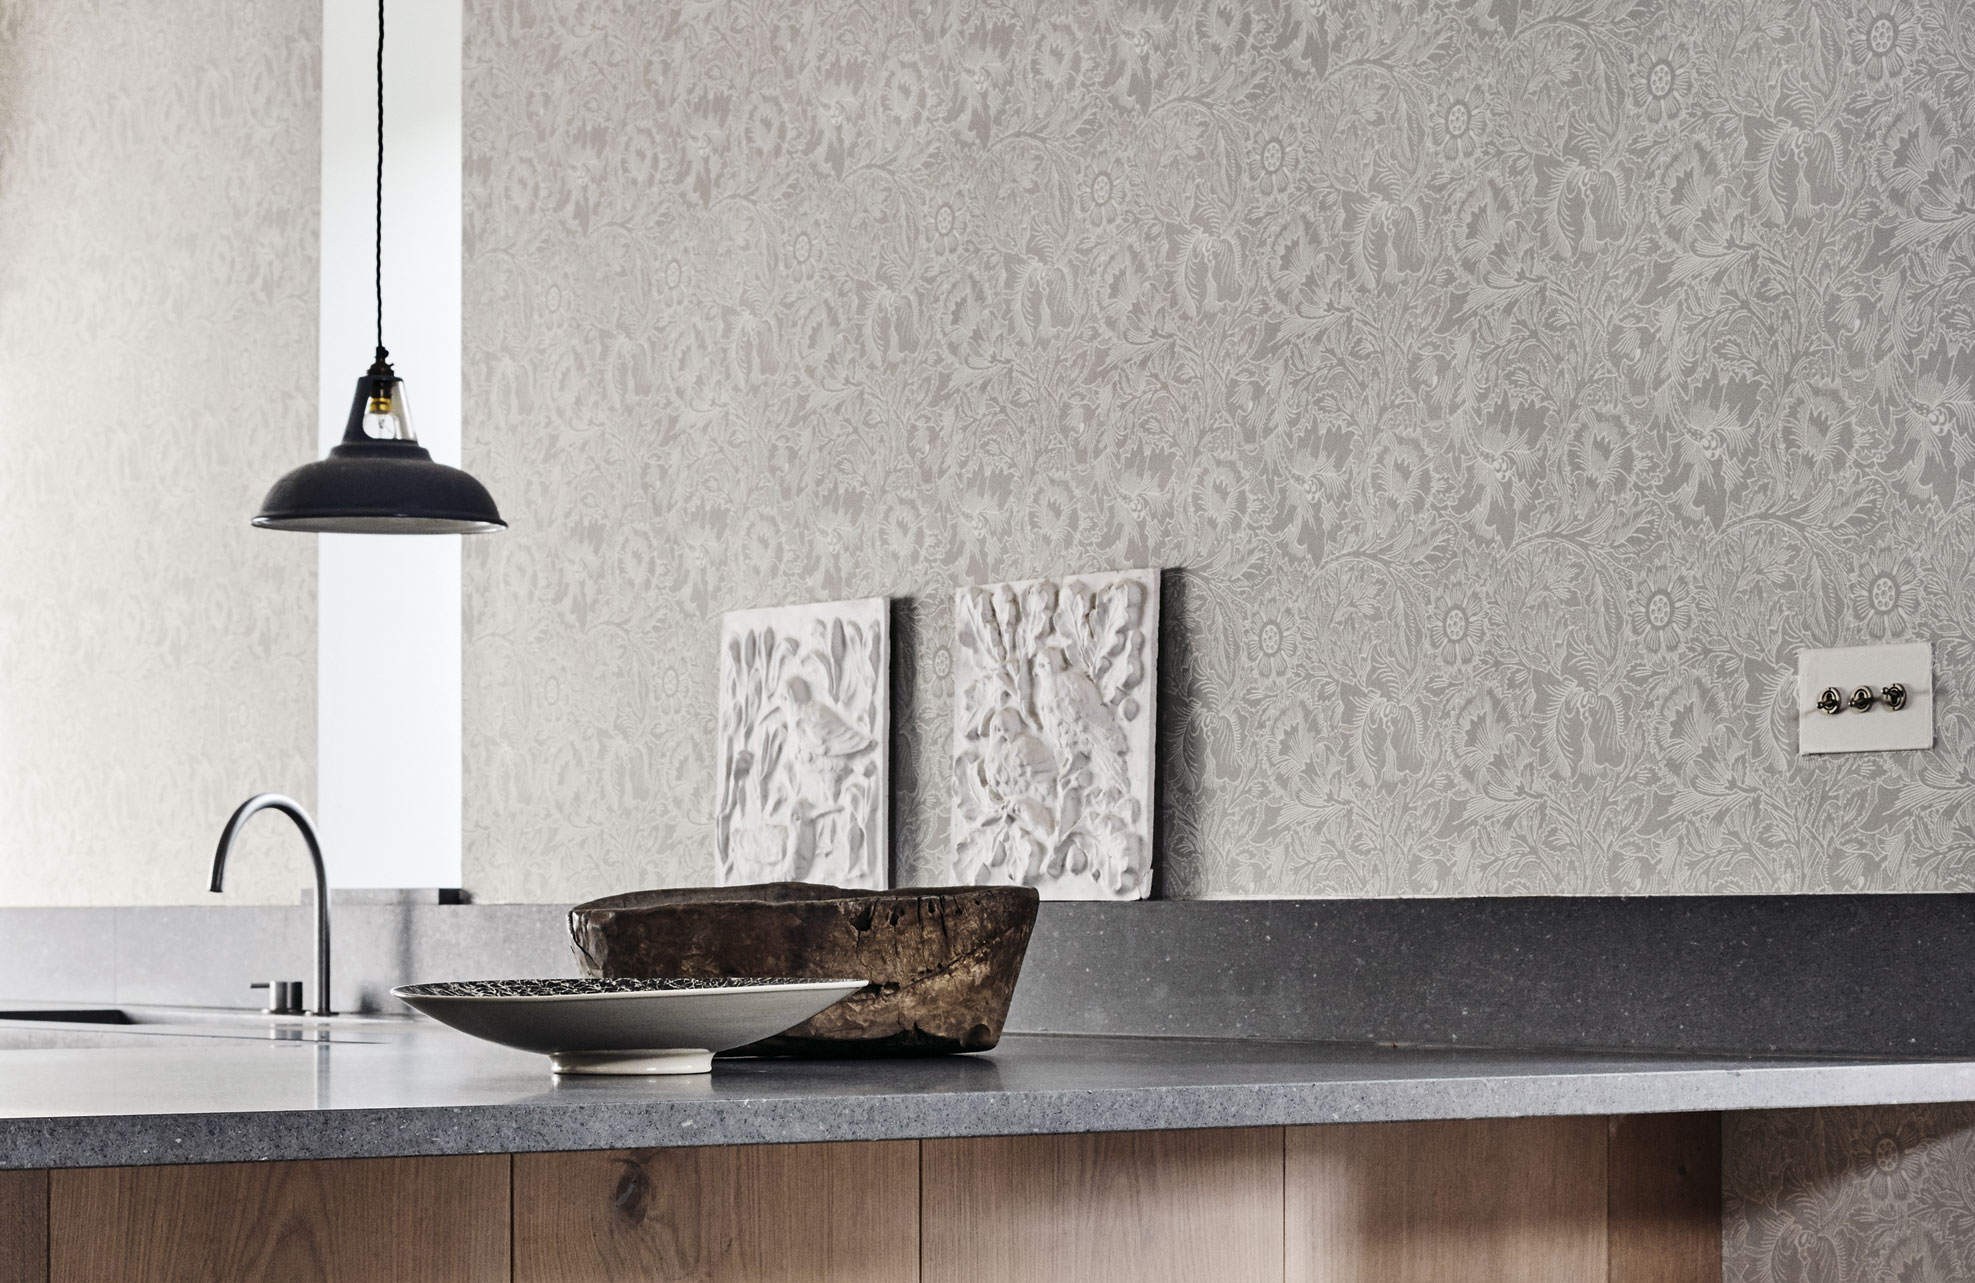 5-morris-pure-wallpaper-poppy-main-neutral-classic-pattern-kitchen-decor-interior-bowls-modern